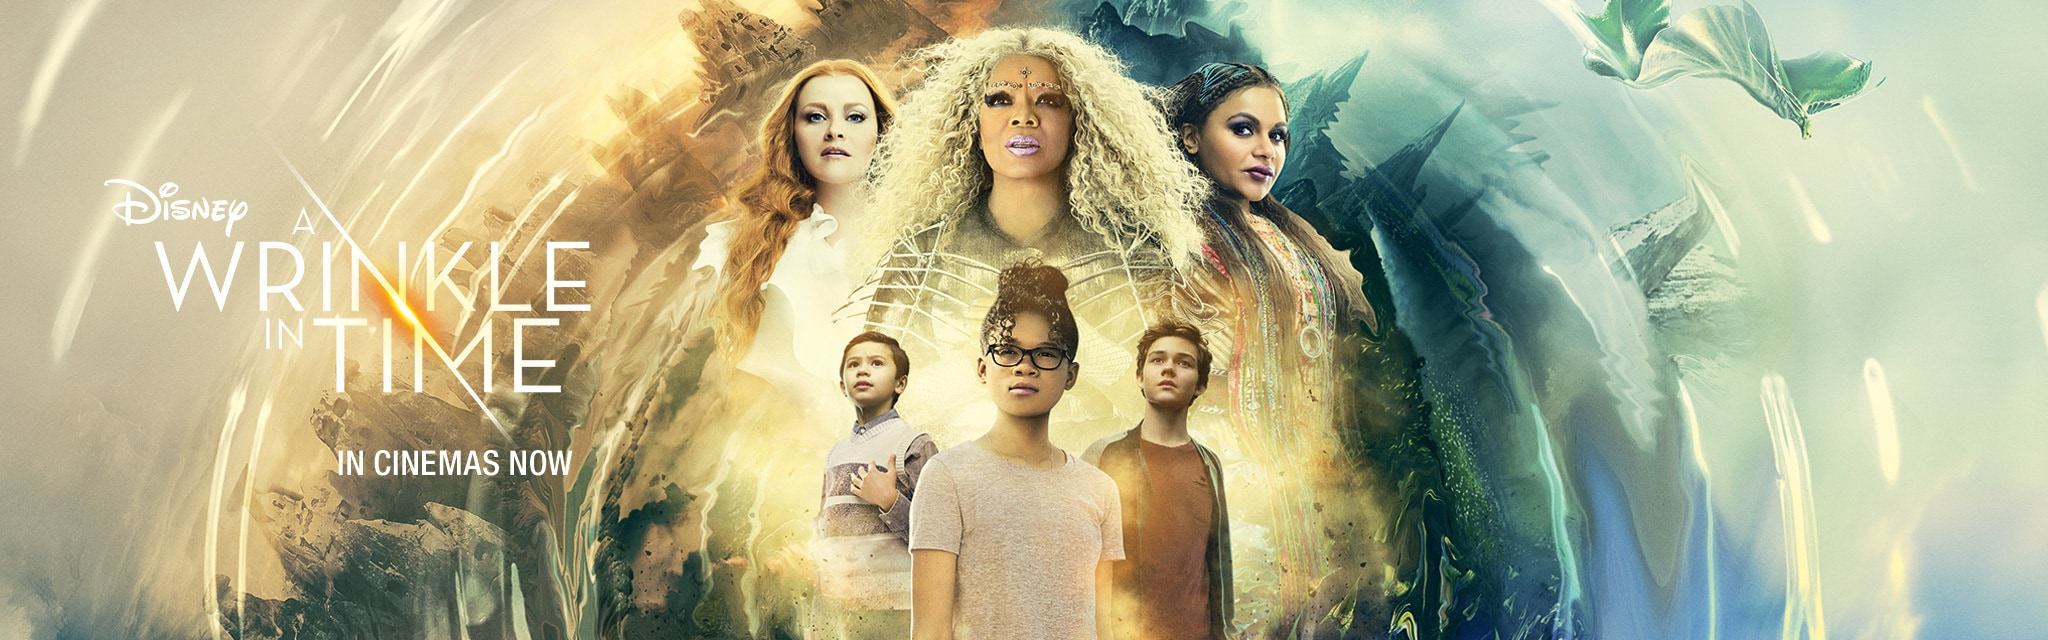 A Wrinkle In Time - In Cinemas Now